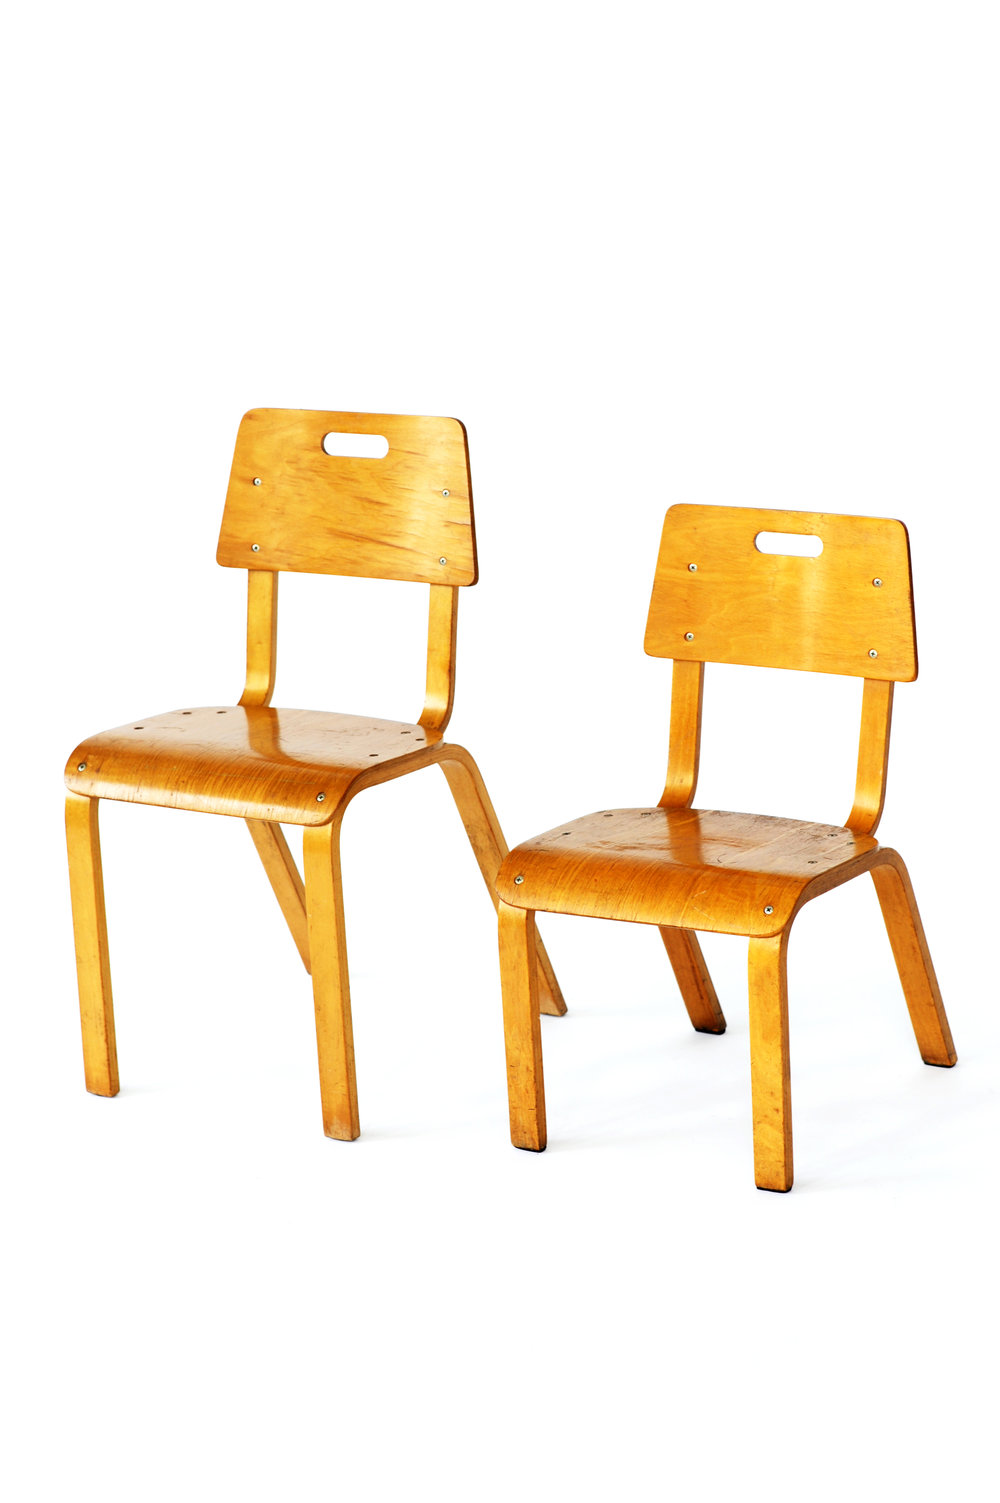 Thonet Plywood School Chairs - Photo by Lora Appleton